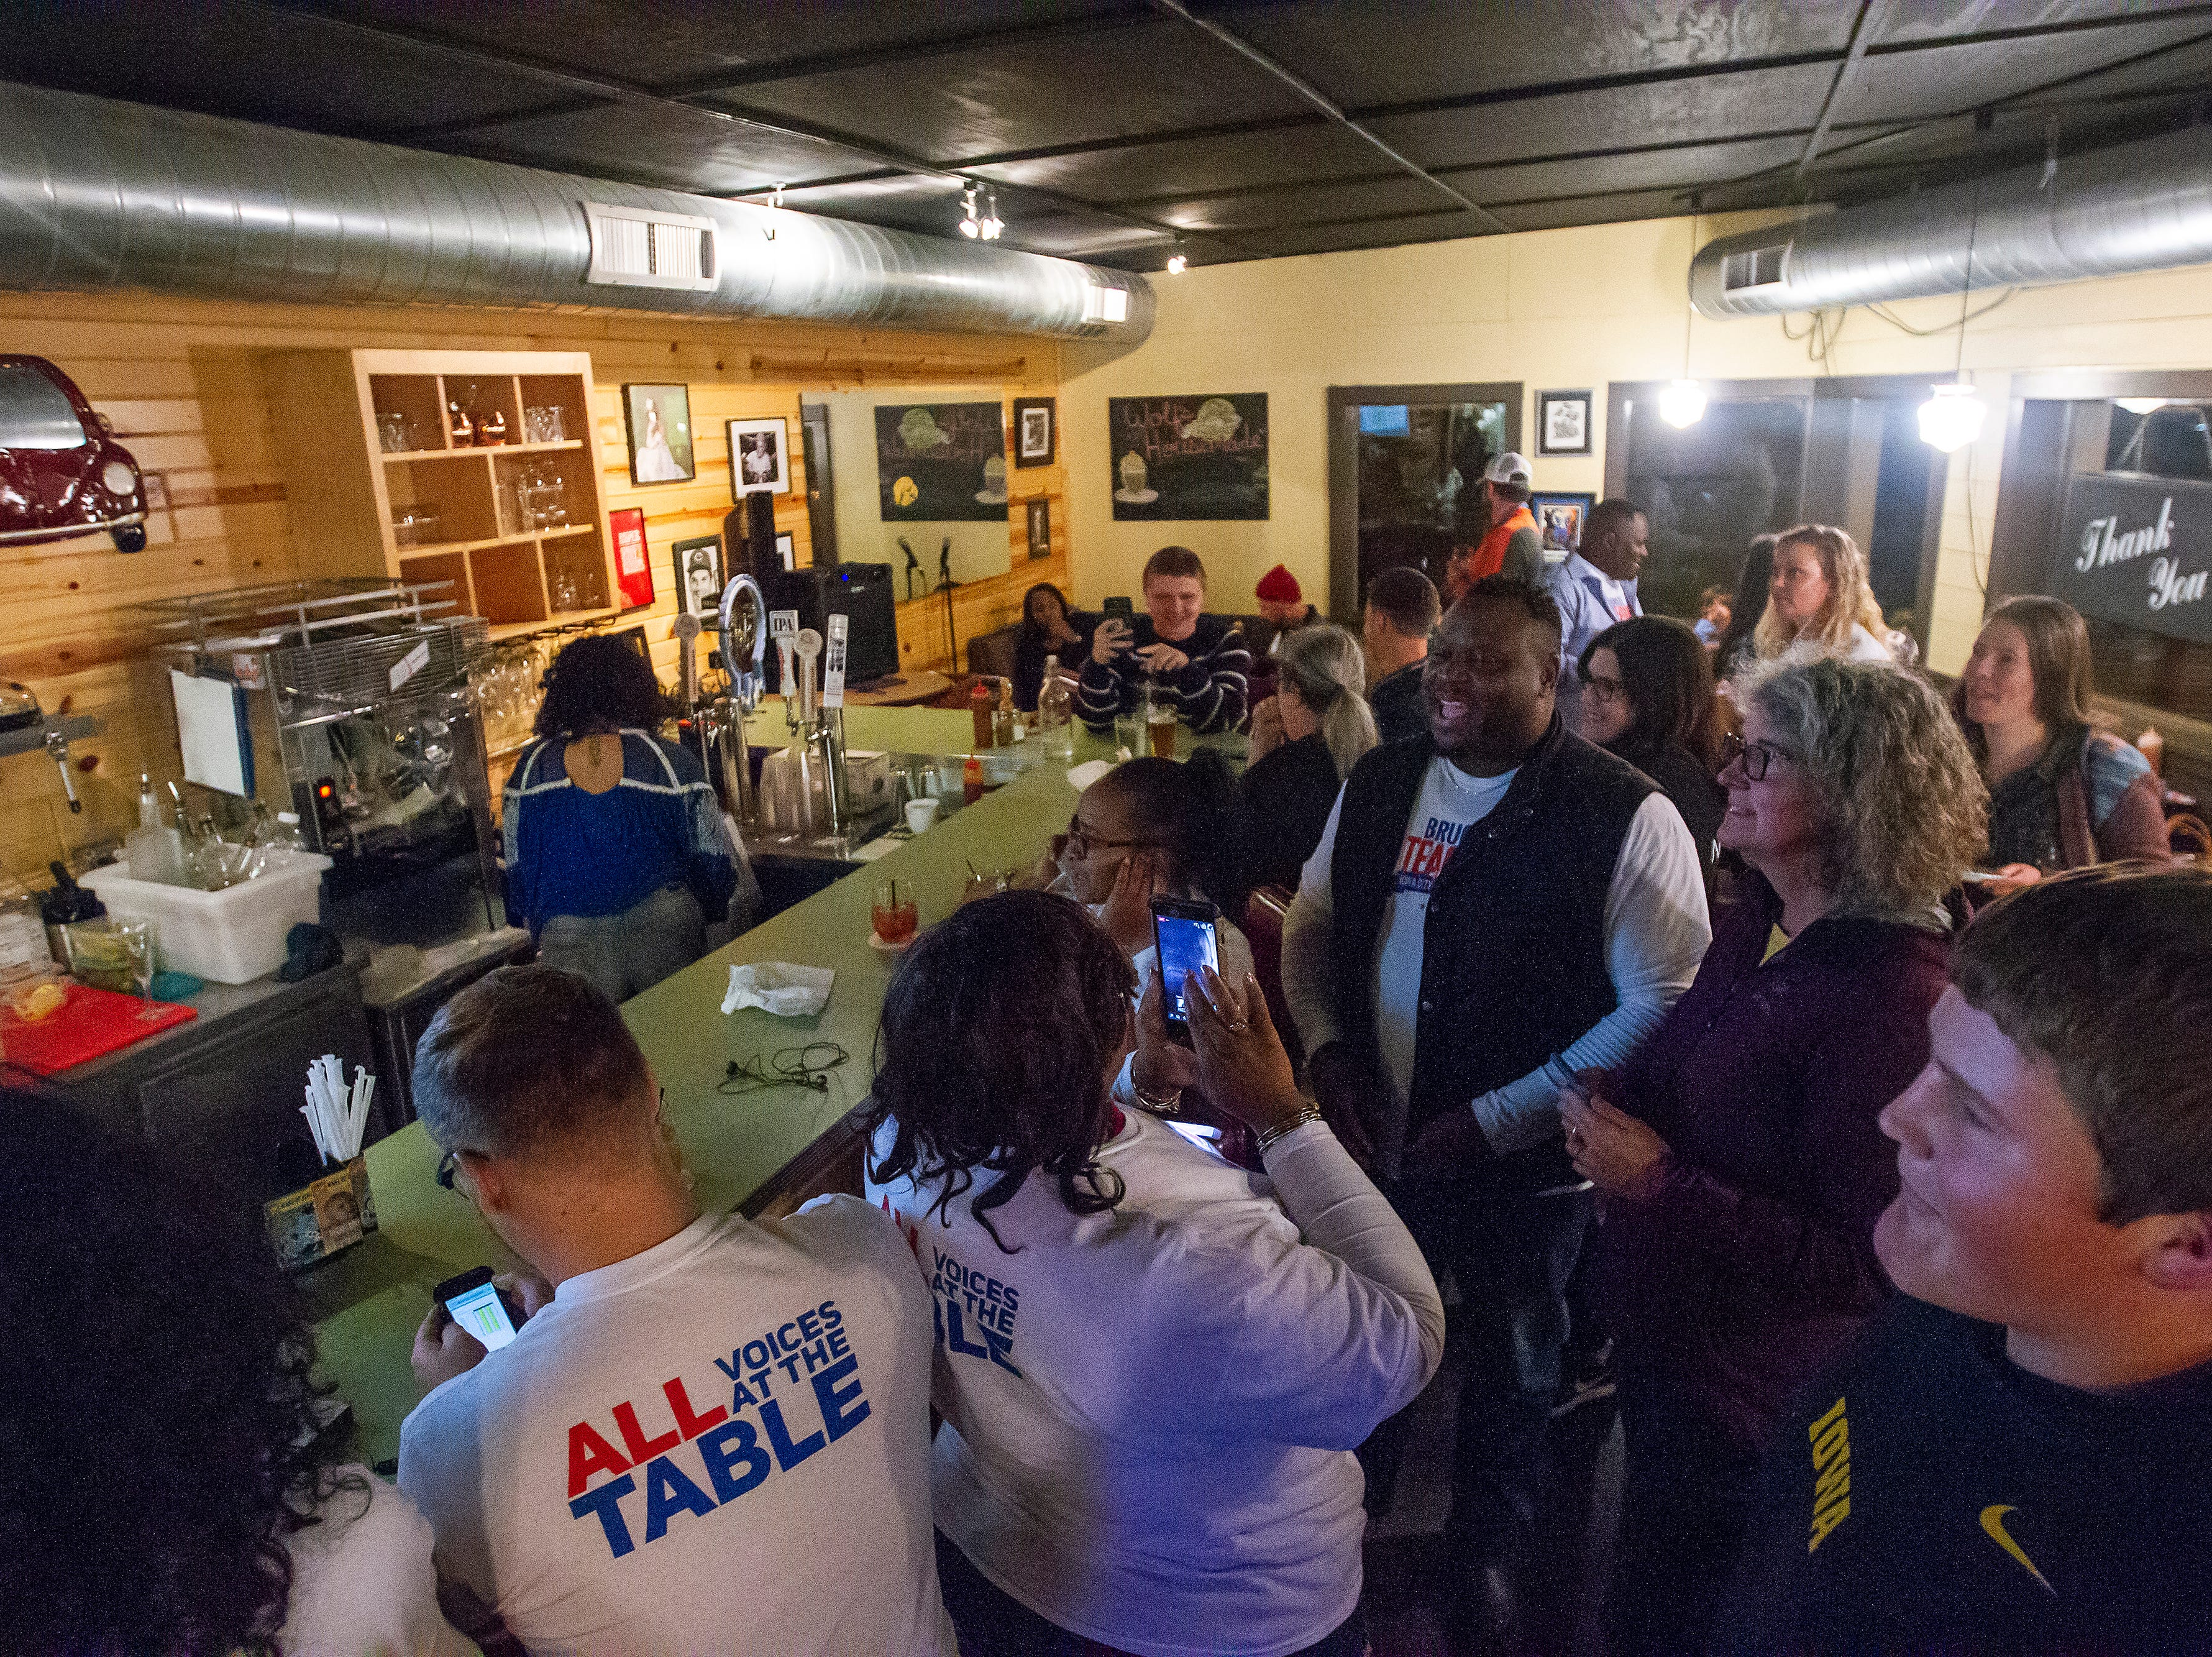 Bruce Teague celebrates with supporters after the final precinct reported its votes on Tuesday, Oct. 2, 2018, at Billy's High Hat Diner on Iowa Avenue in Iowa City.